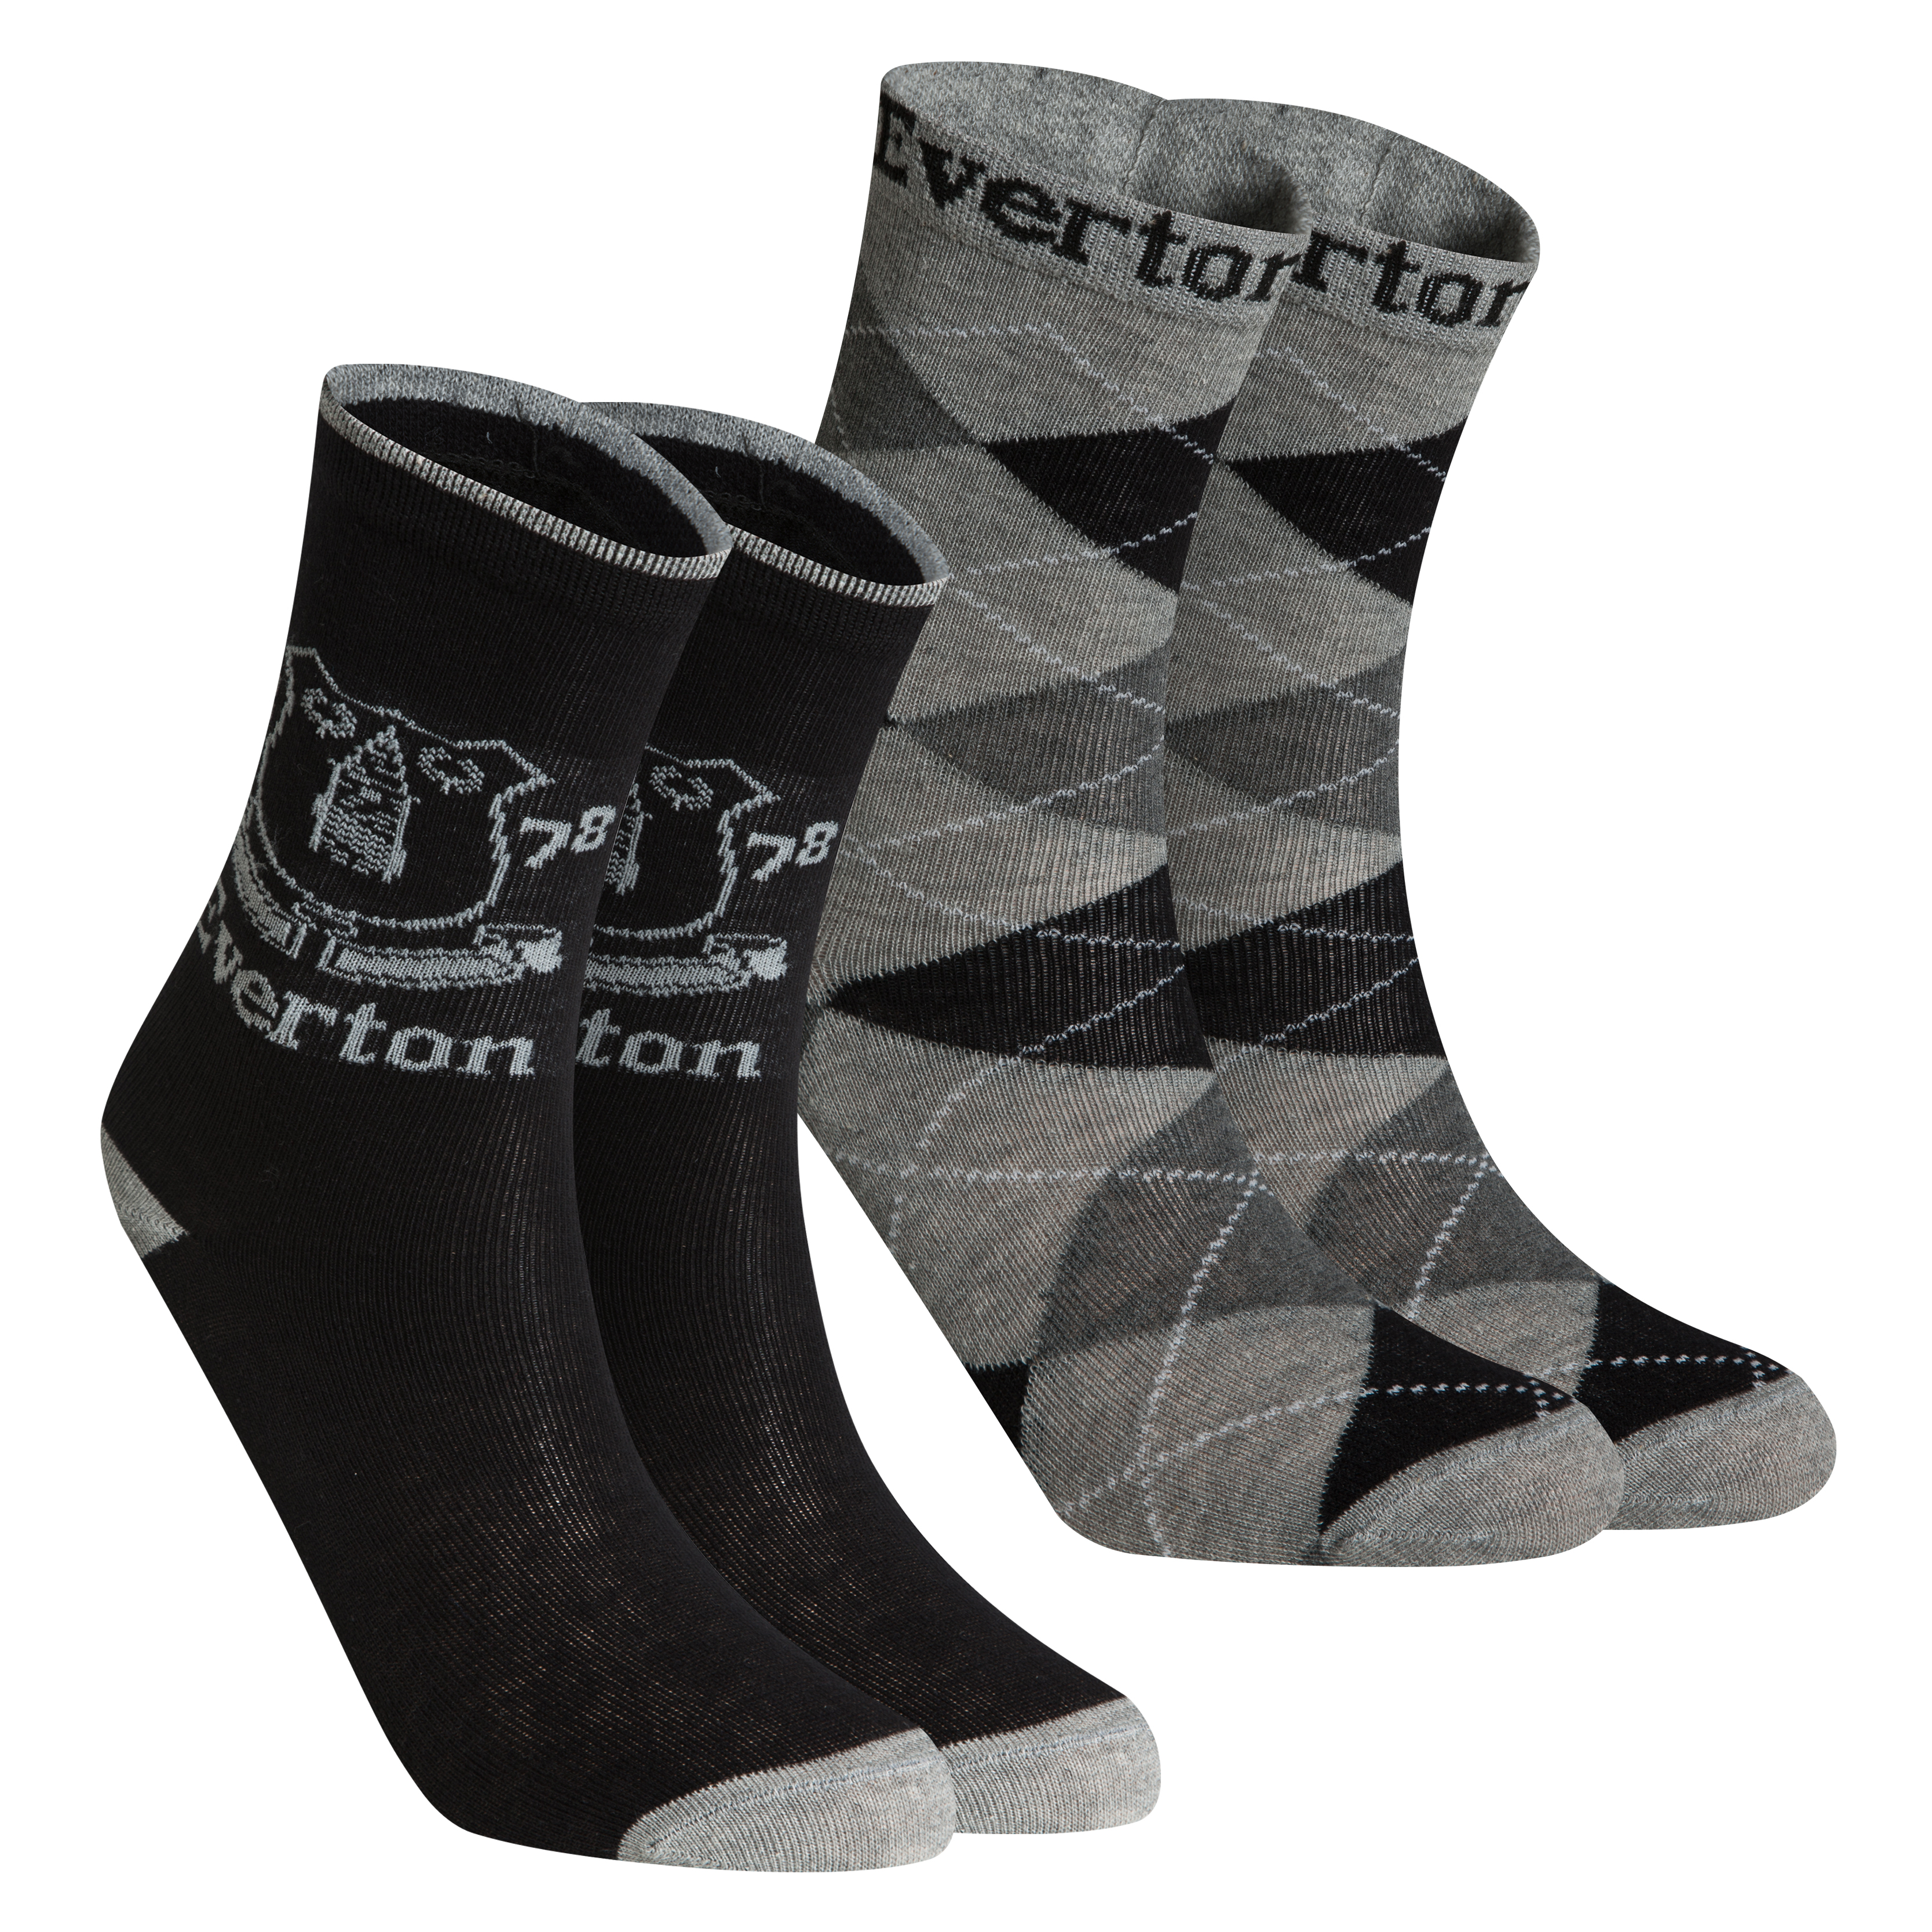 Everton Pack of 2 Dress Socks - Black/Grey - Boys